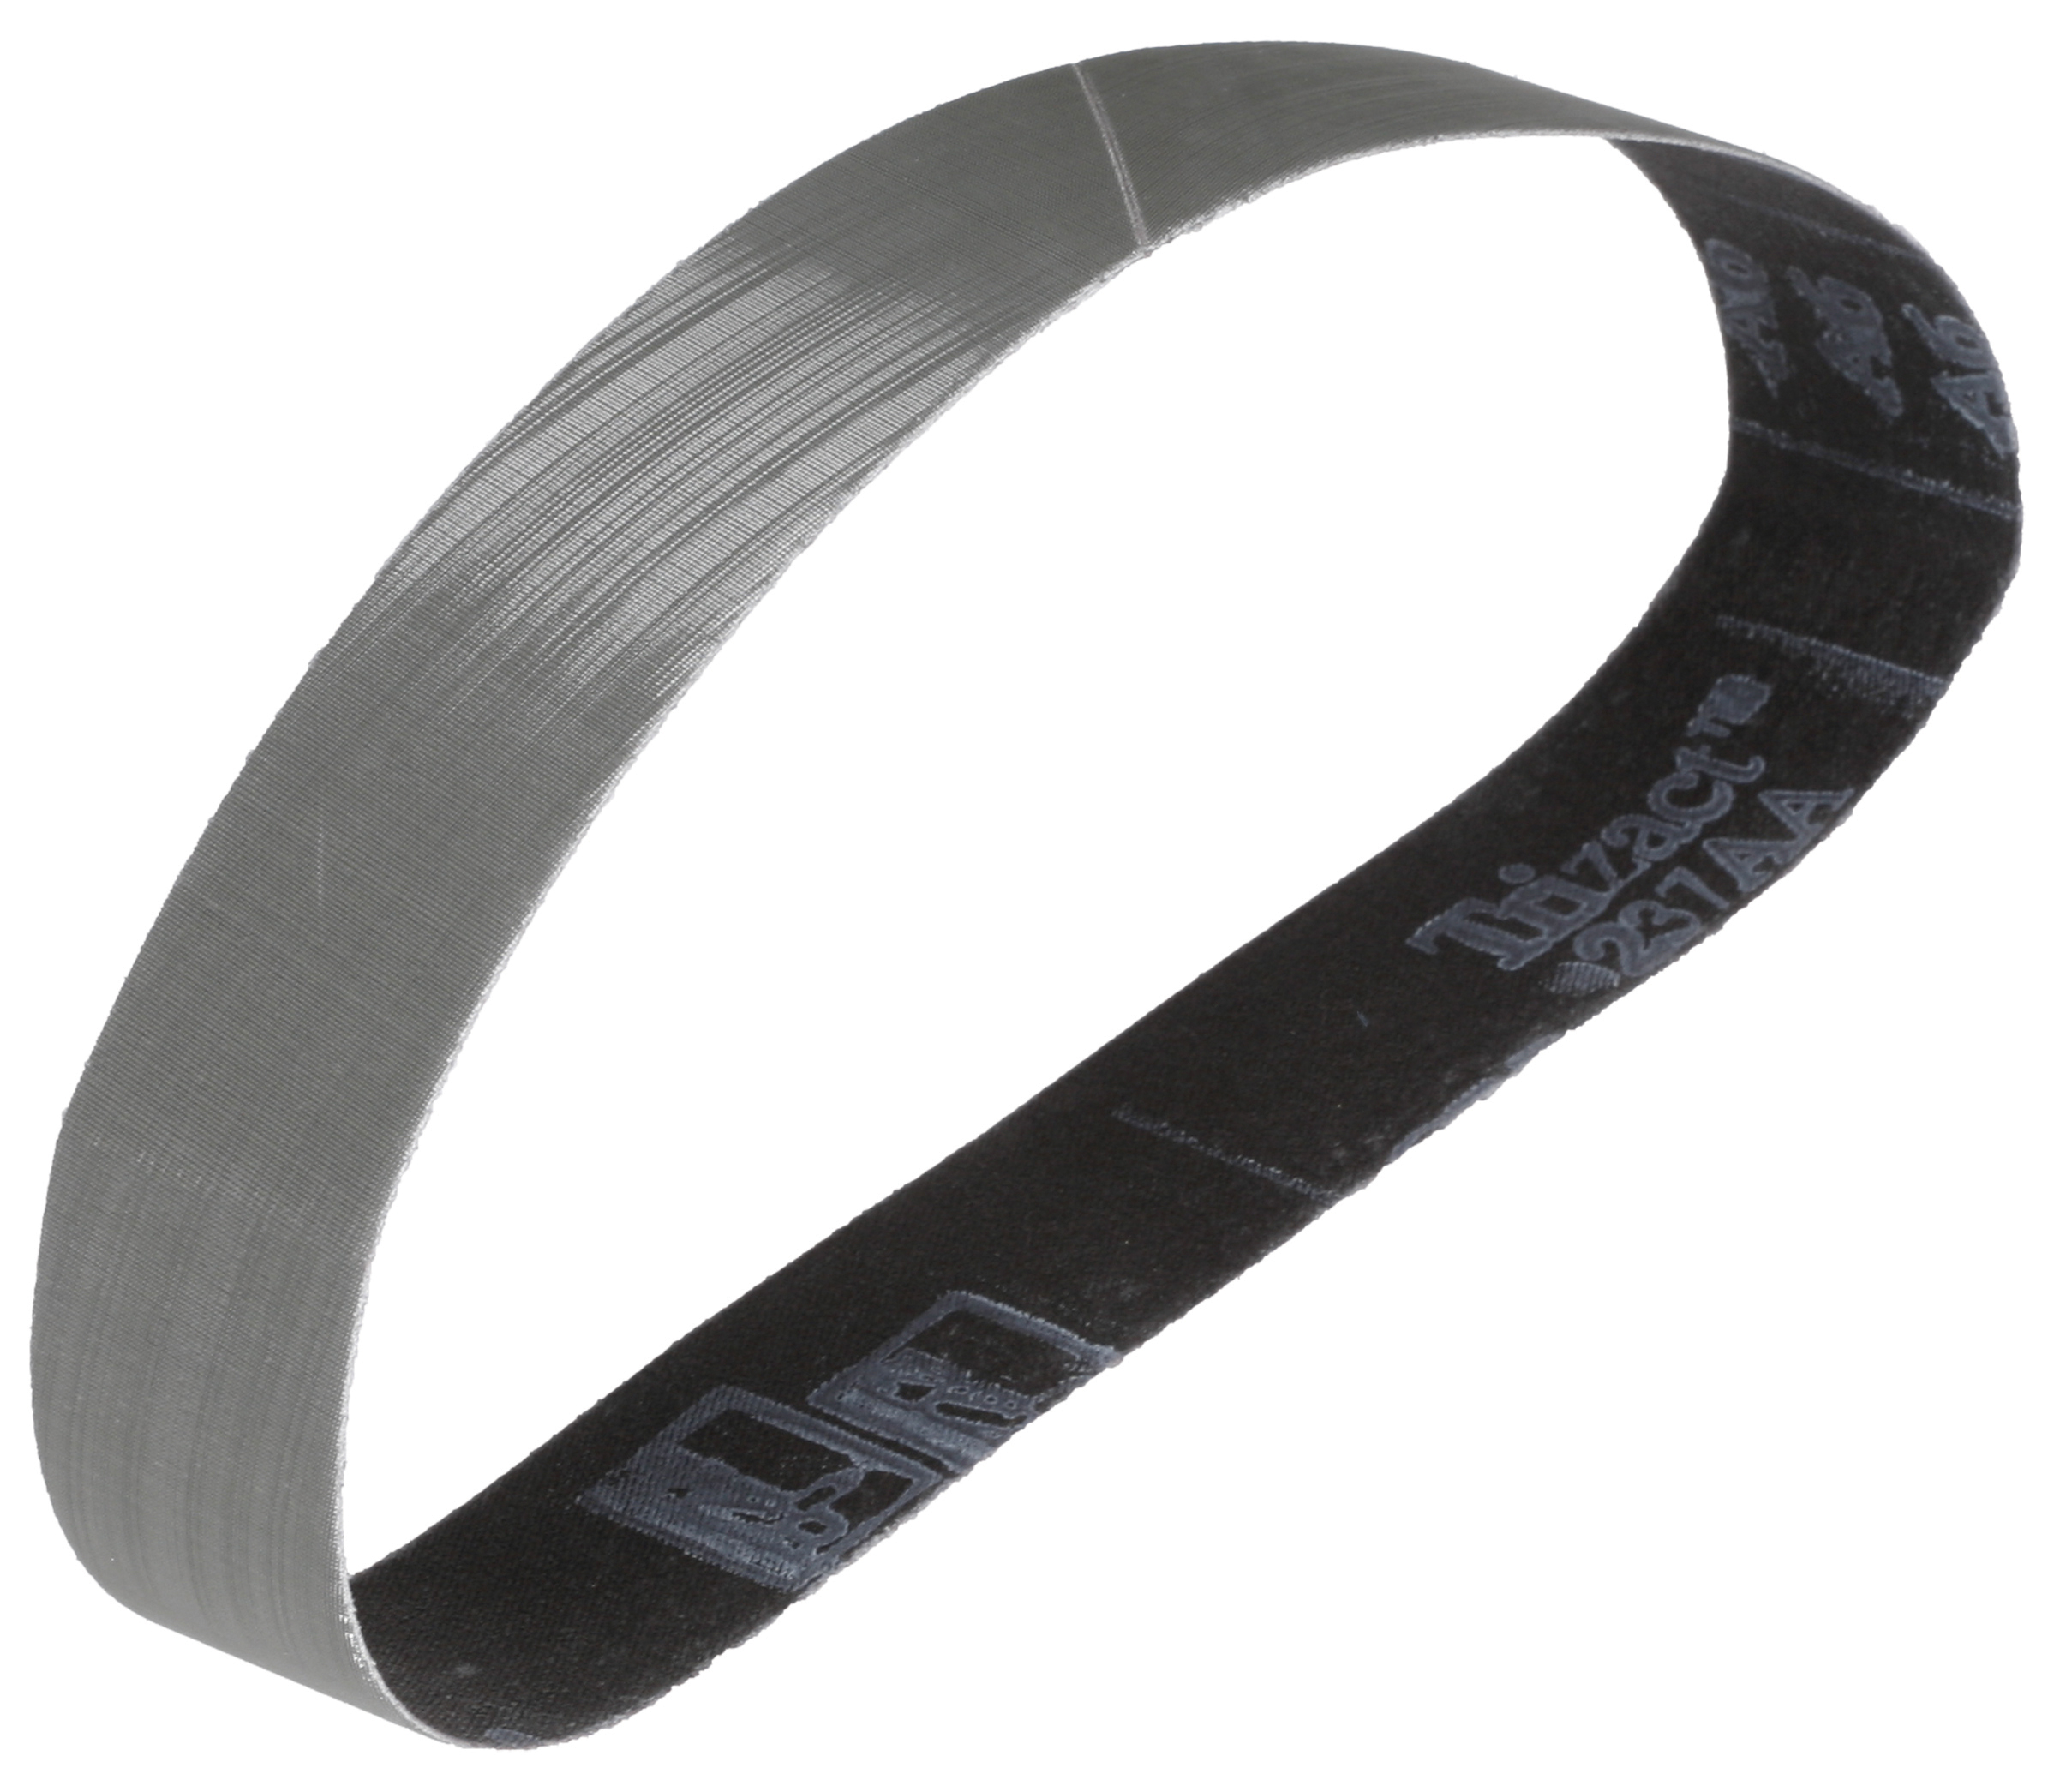 Trizact 237 Tube Polishing Belts - Packs of 10.